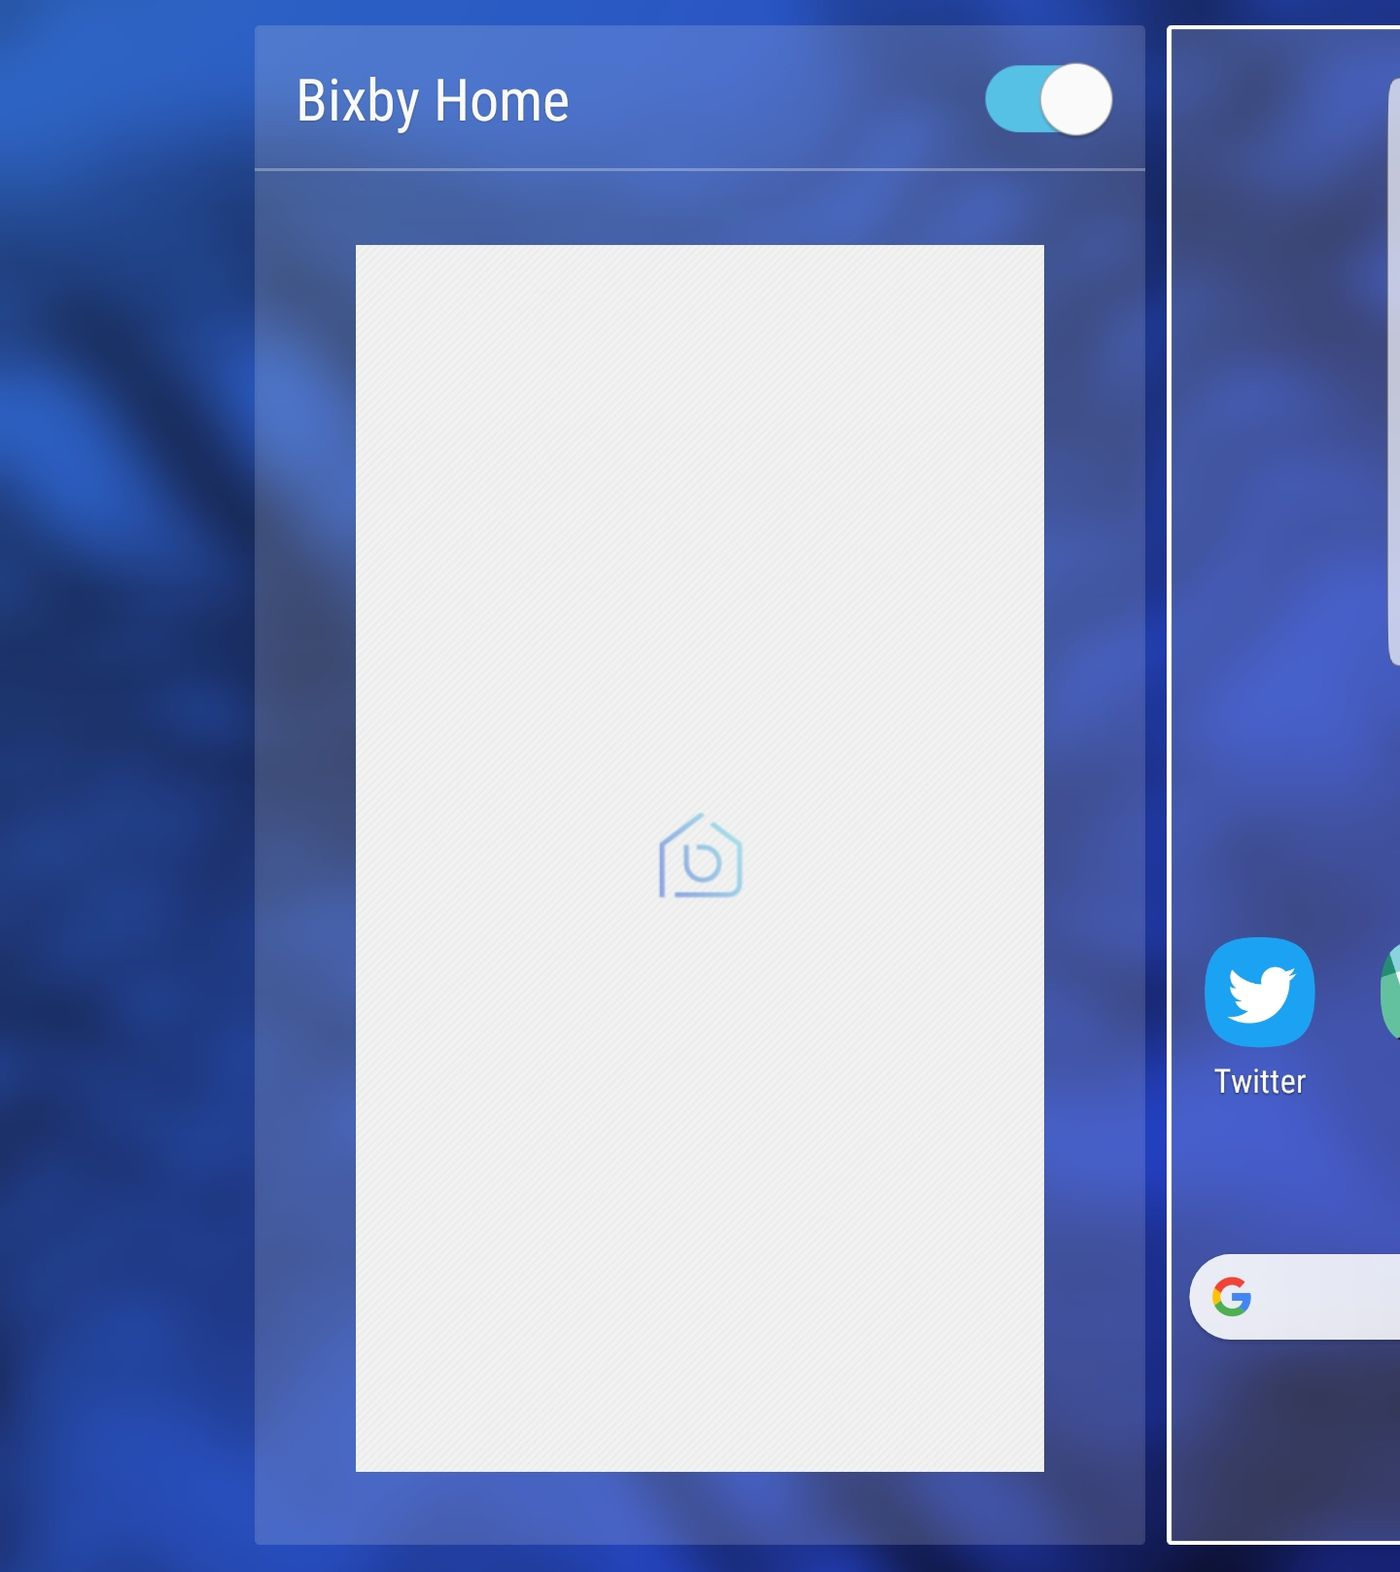 How to turn off Bixby on the Samsung Galaxy S9, S8, and Note